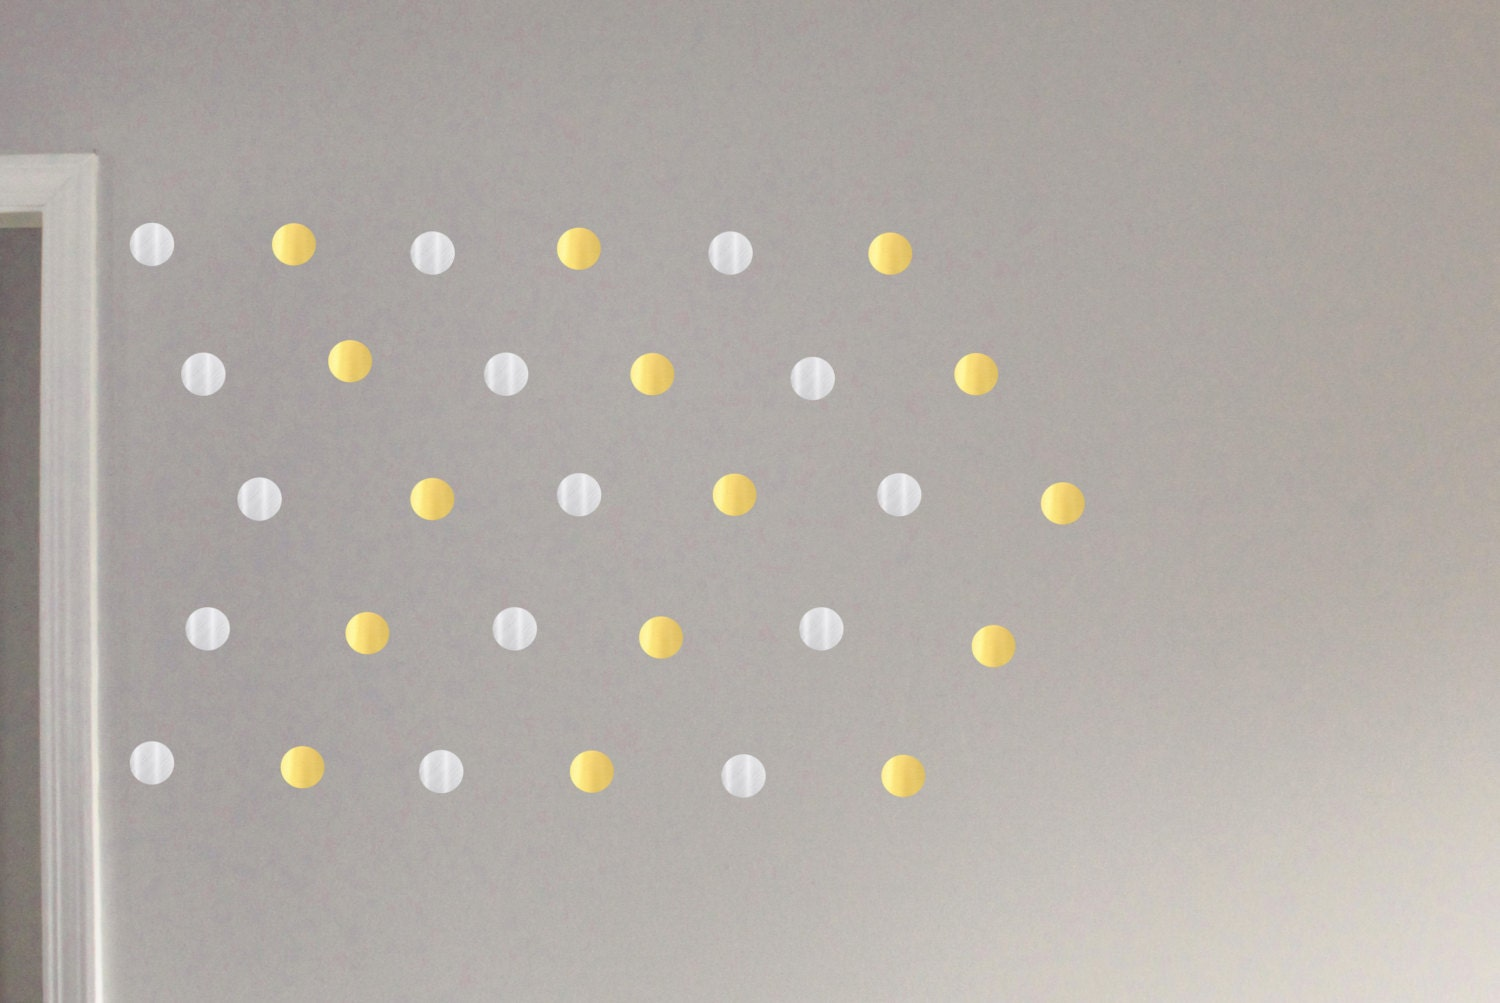 Gold Circles Wall Decor : Gold circle decals geometric wall decor by bioncaalexandria